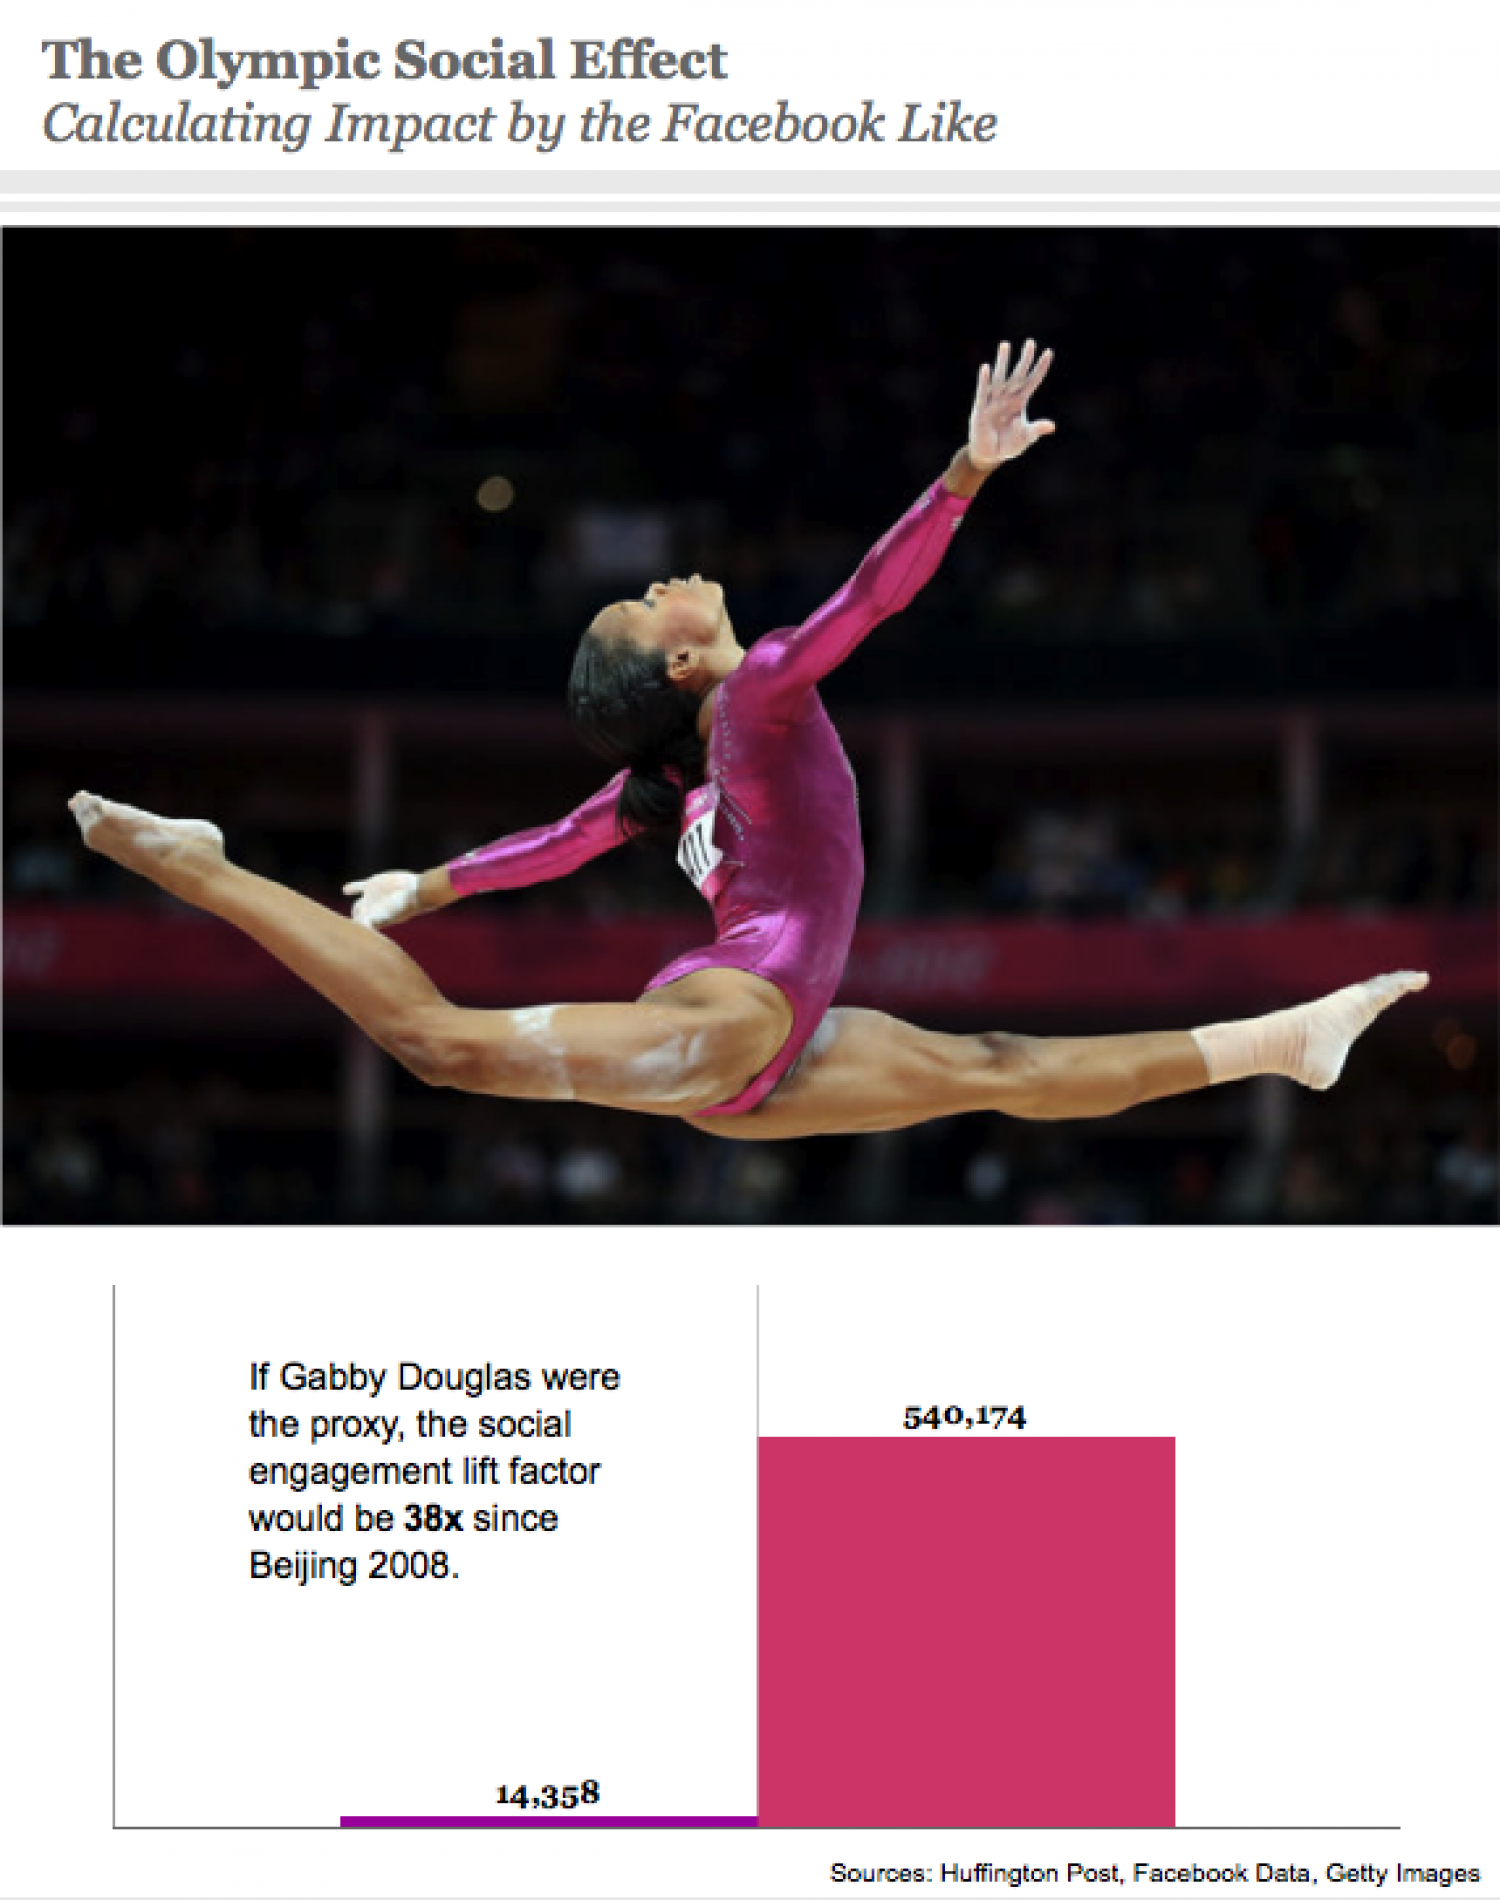 The Olympic Social Effect Infographic